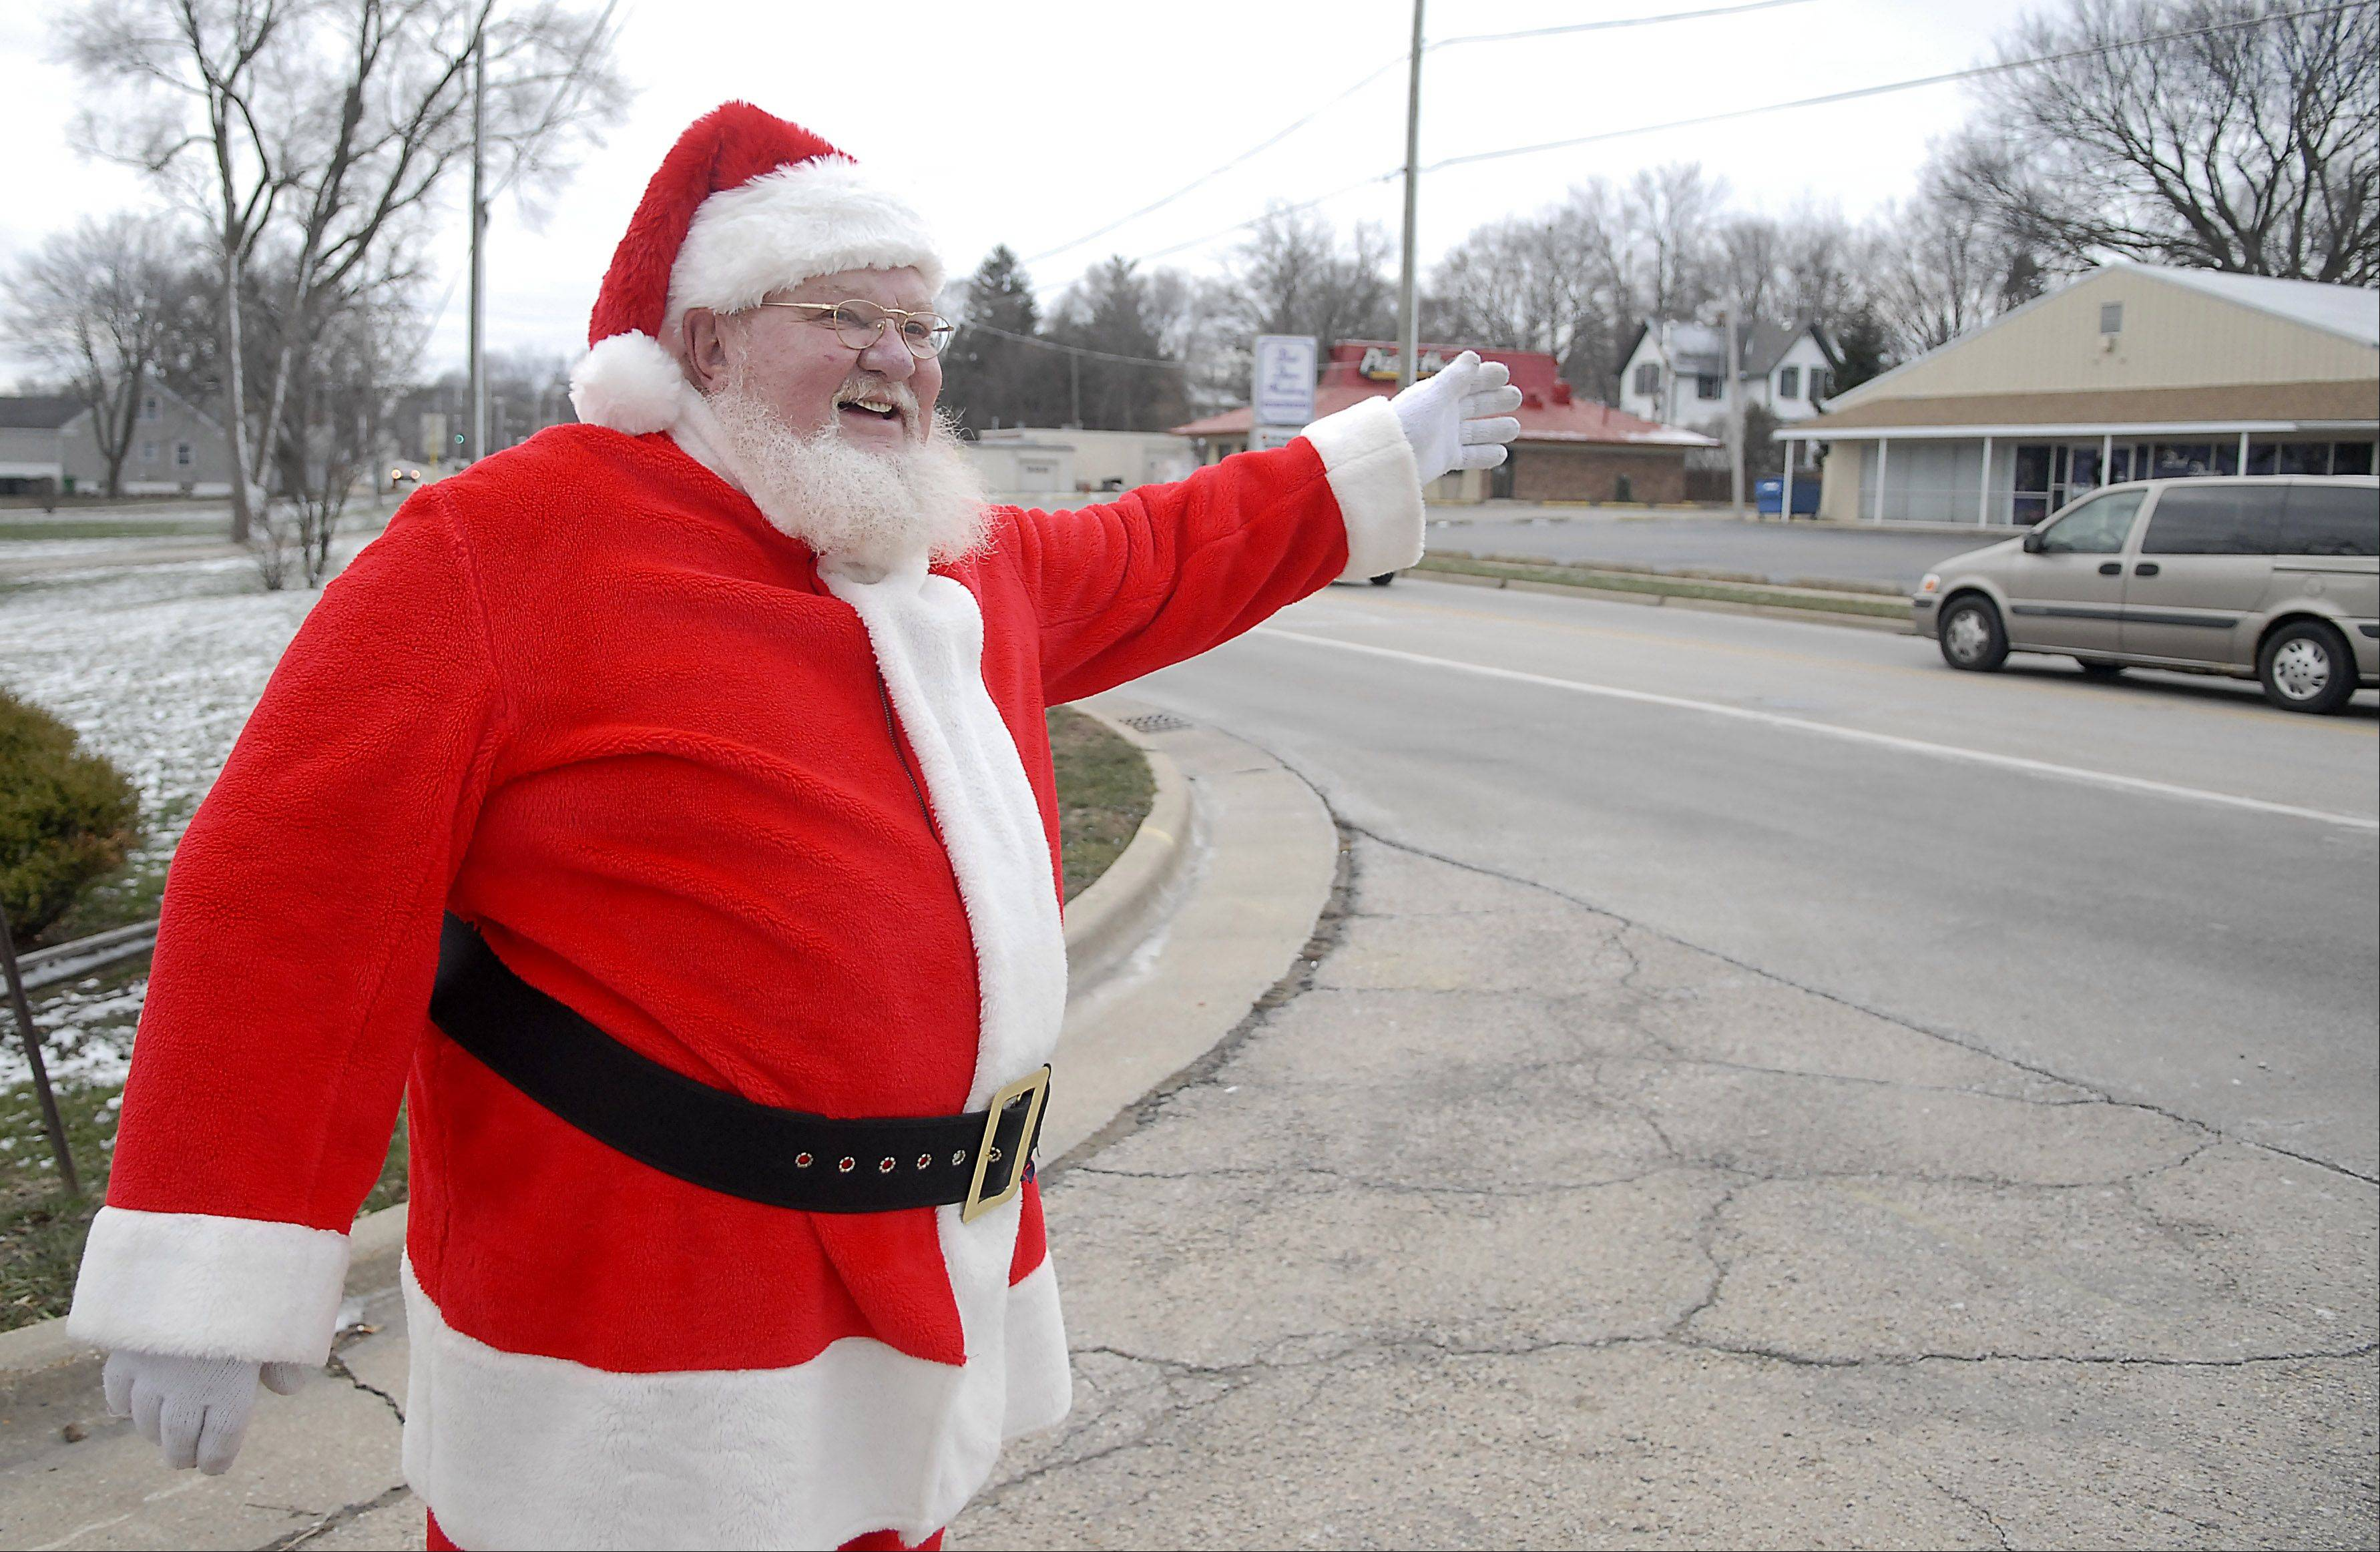 Richard Ahrens of East Dundee waves to travelers from the corner of N. La Fox St. (Route 31) and Stone Street in South Elgin, just as he has done every Christmas Day for more than 20 years.